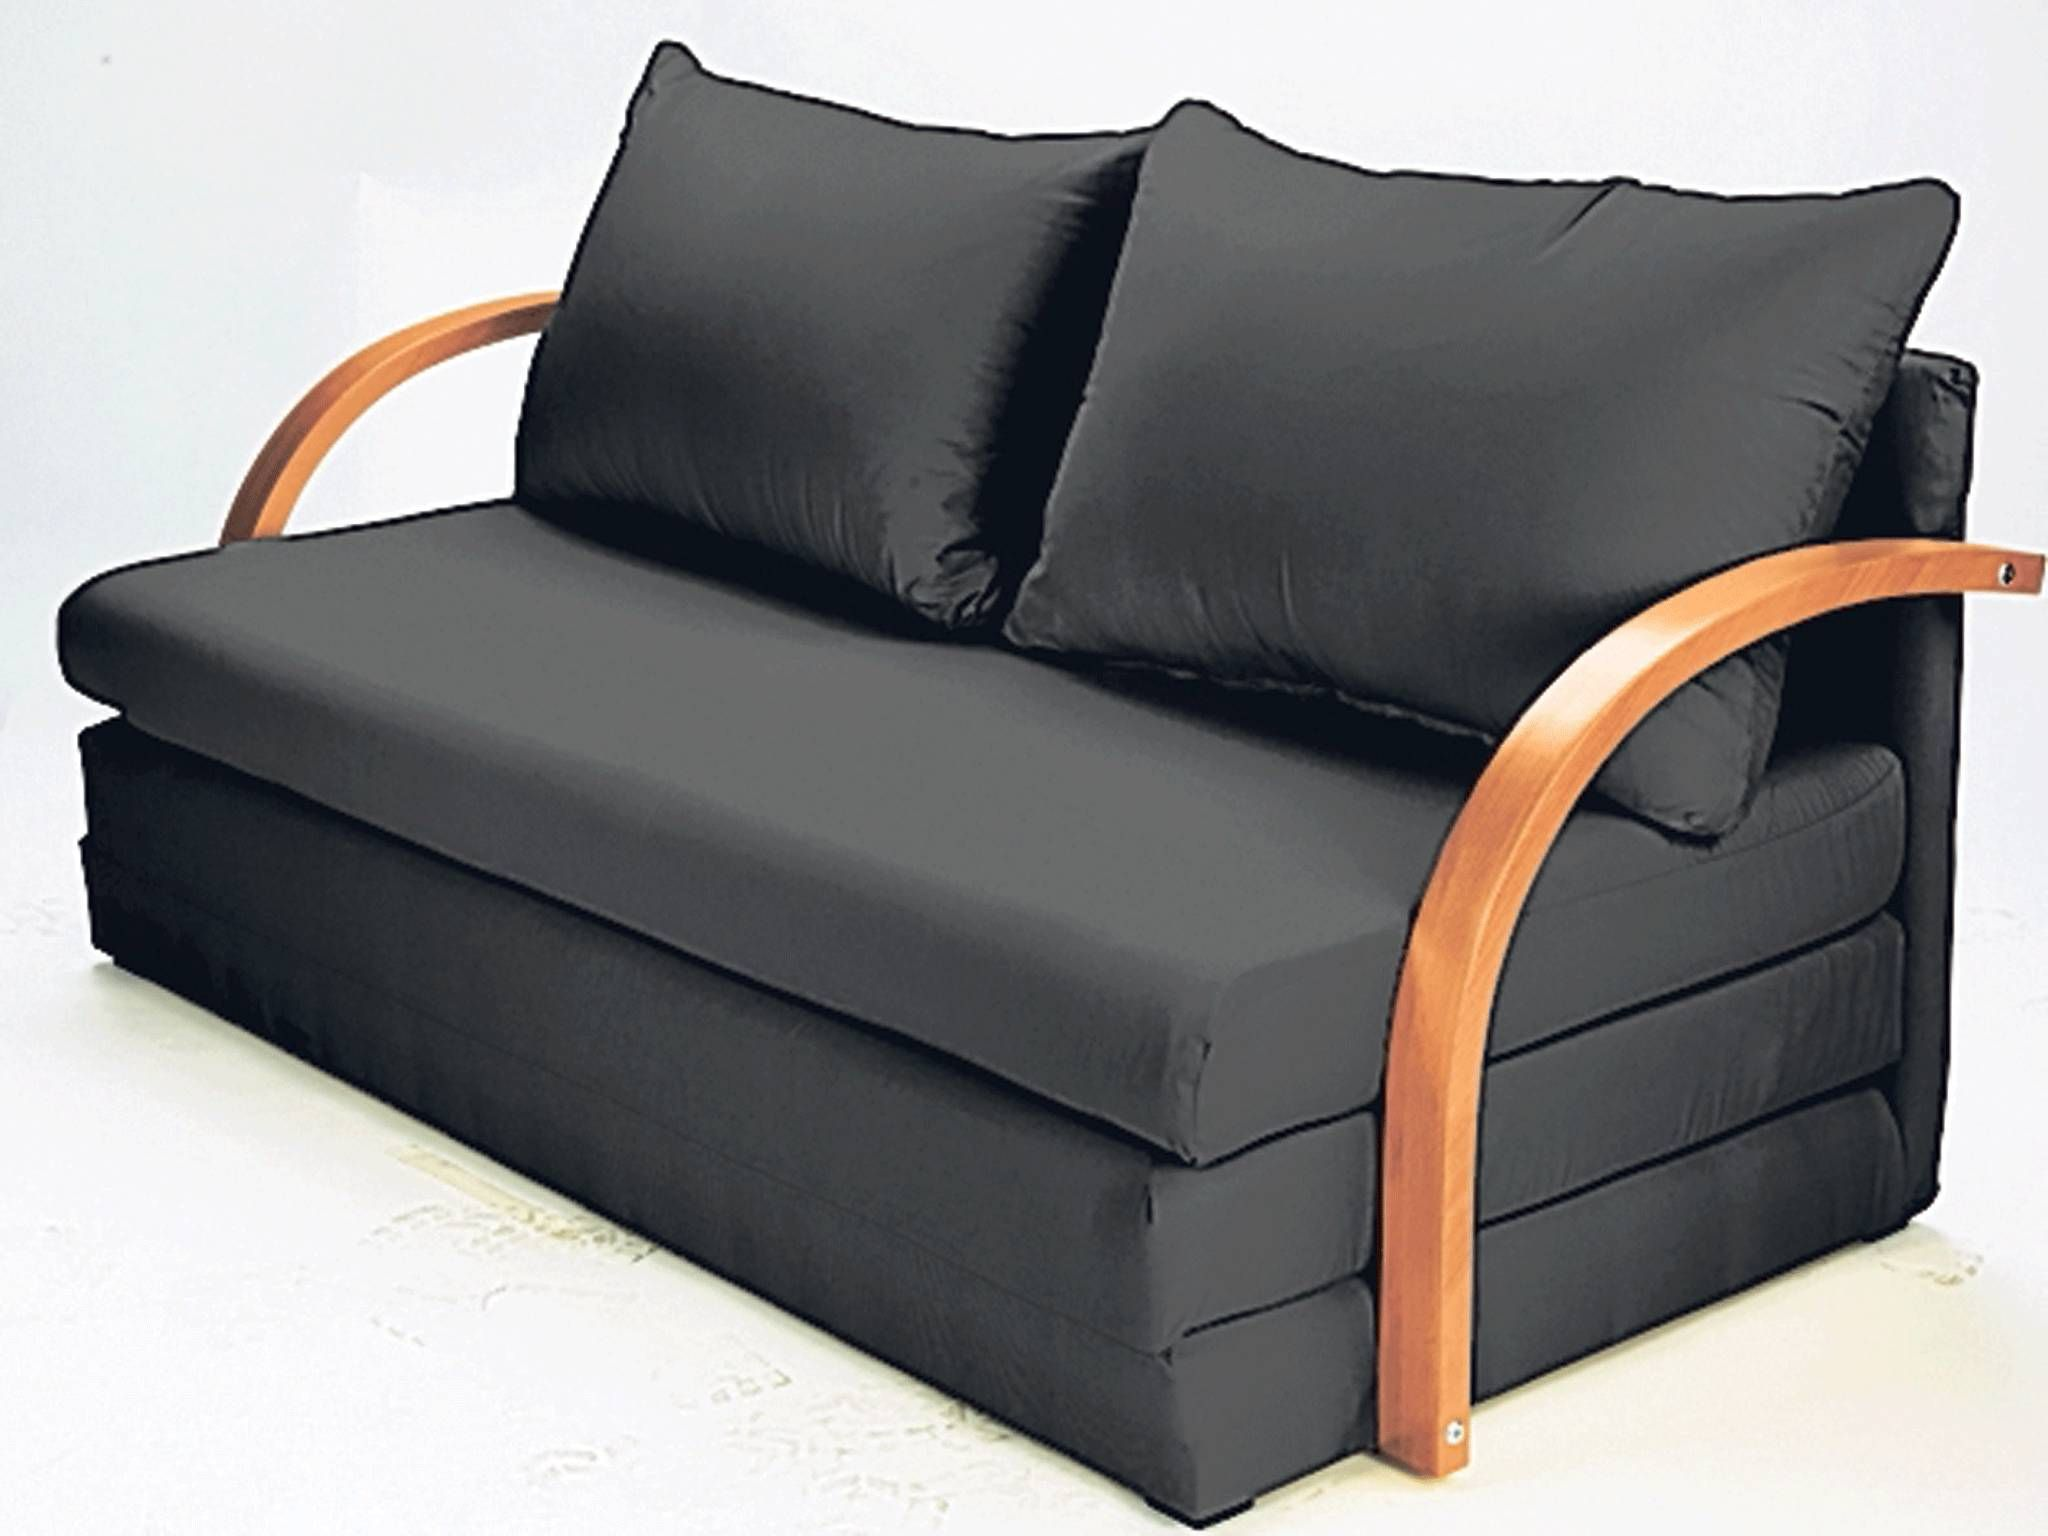 Chaise Lounge Sofa Bedroom Cozy Best Beds For Your Back With Comfortable Padded Mattress And Twin Cushion